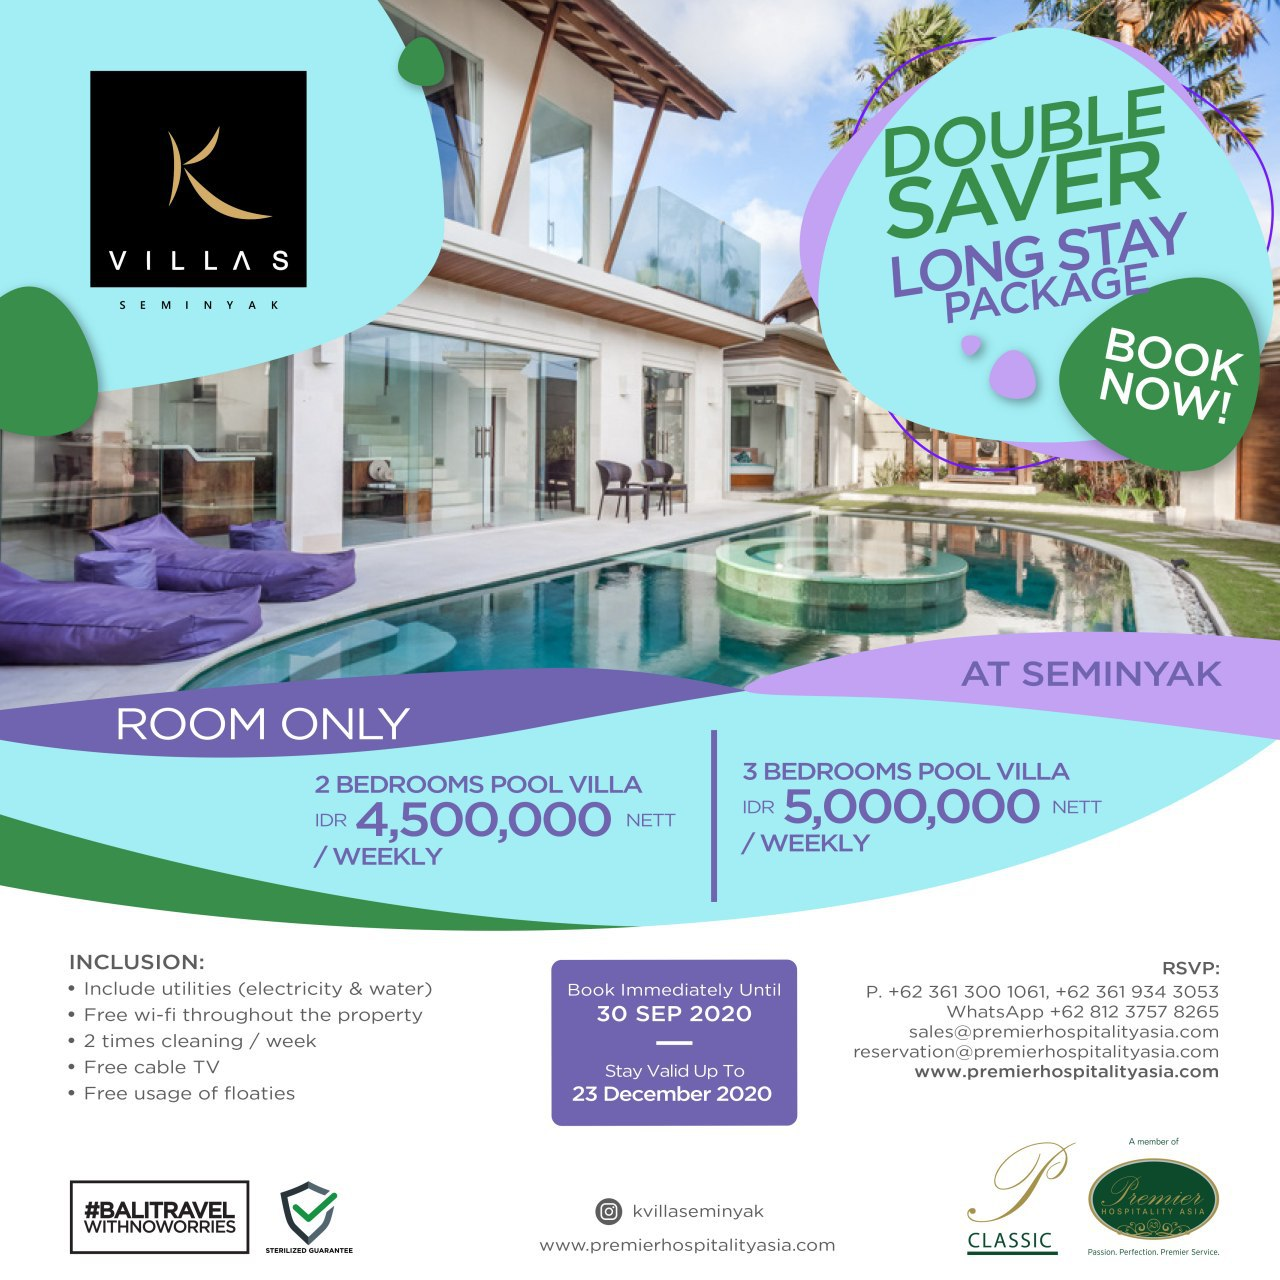 k-villas-holidays-3-bedroom-villa-seminyak-long-stay-long-term-package-weekly-rental